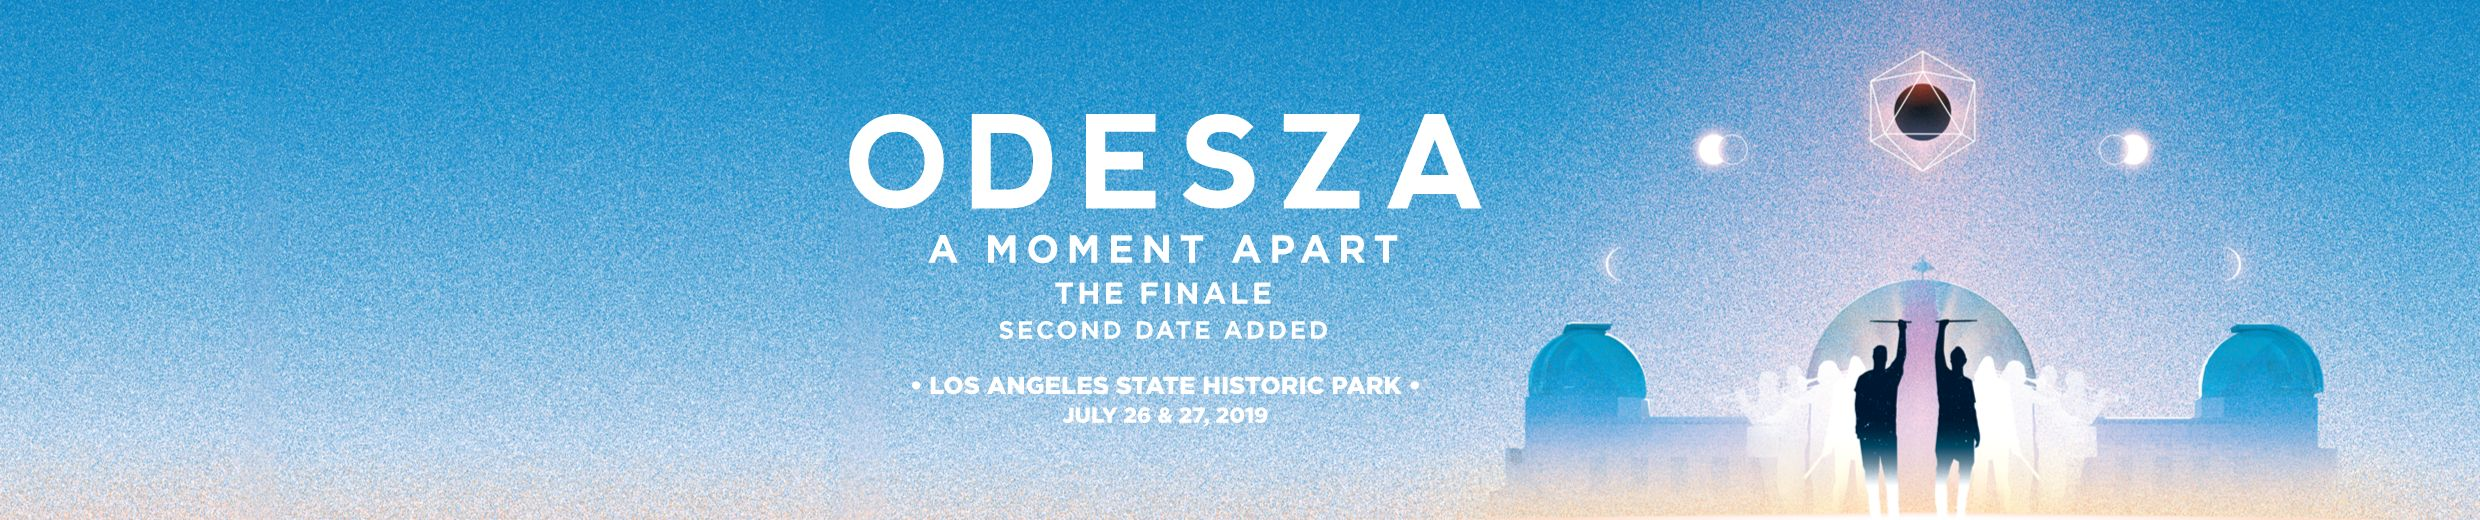 ODESZA | Free Listening on SoundCloud